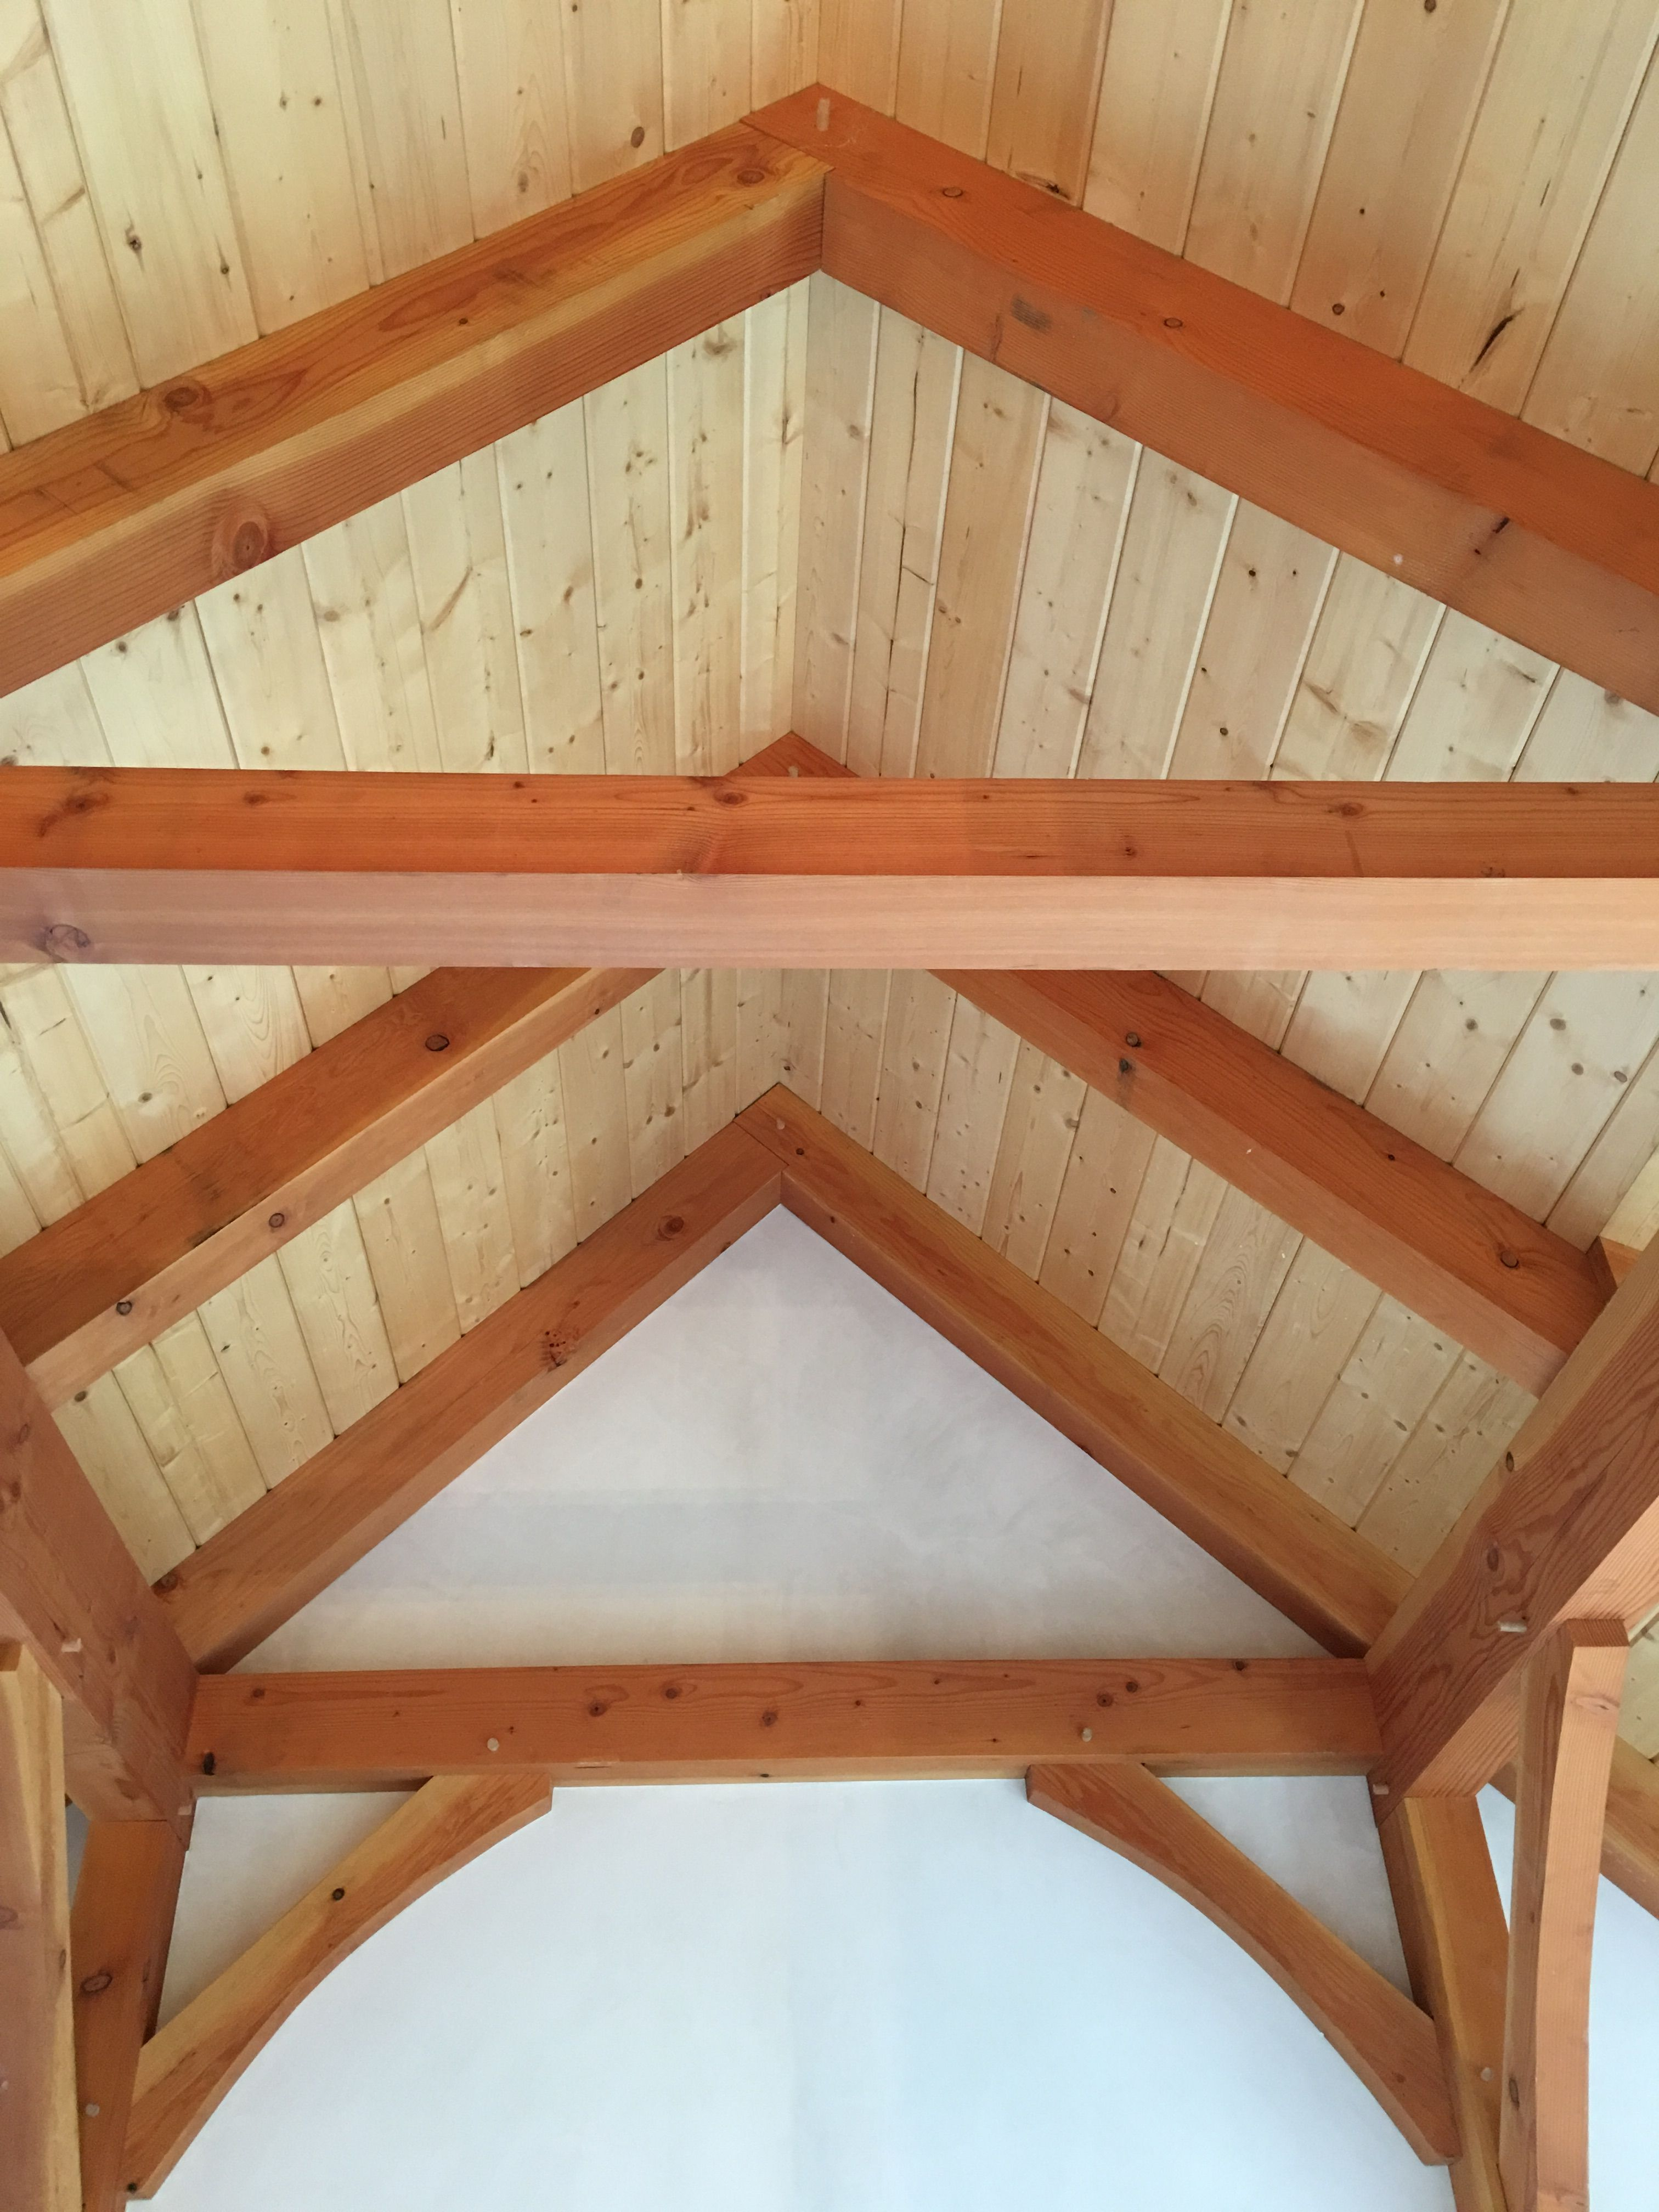 Post And Beam Home With Shiplap Ceiling The Site Of A Stone Installation Using A Combination Of Boston Blend Ledges Shiplap Ceiling Stone Veneer Post And Beam